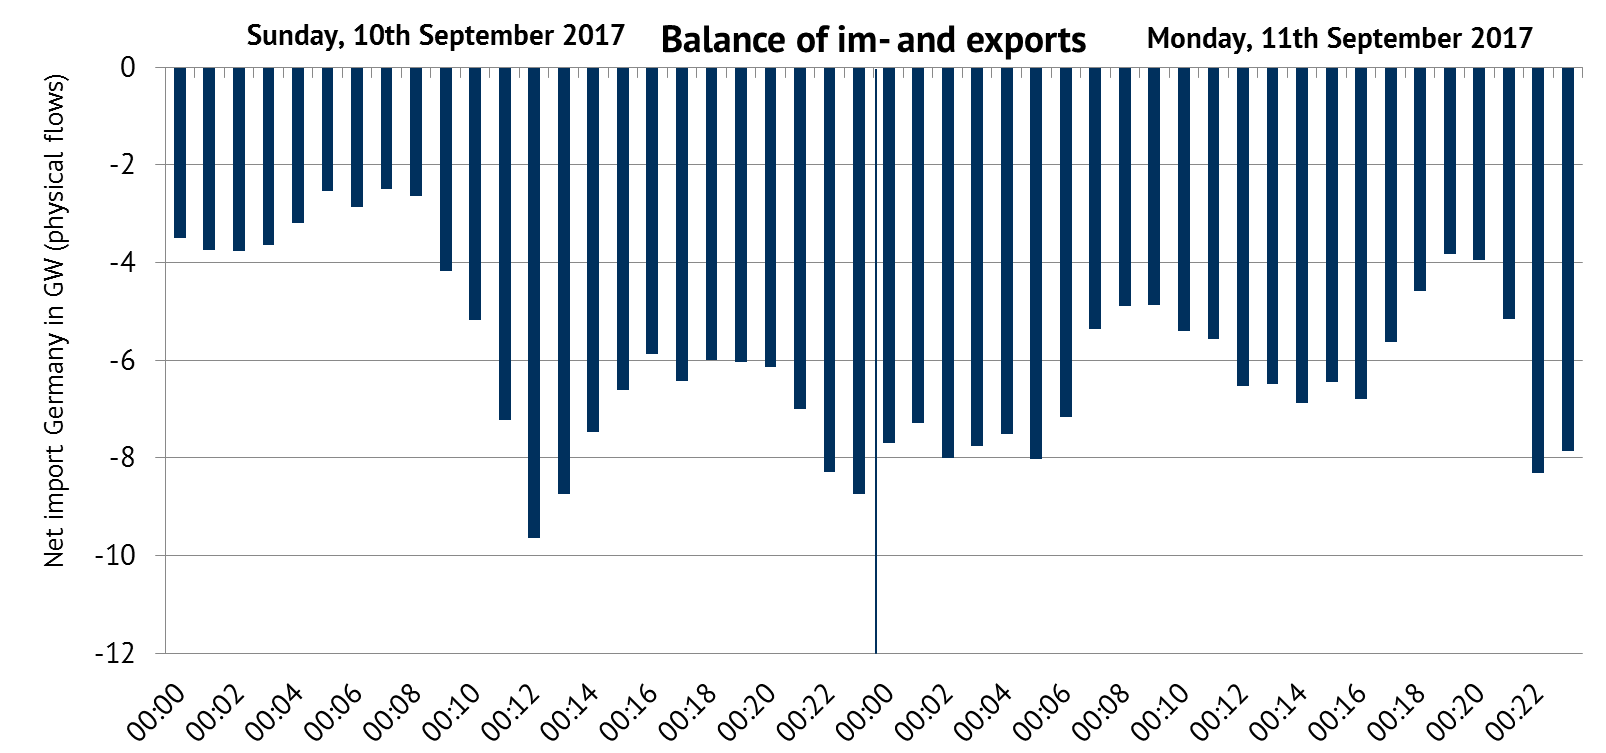 Balance of imports and exports of Germany. Source: ENTSO-E Transparency, physical flows, own figure